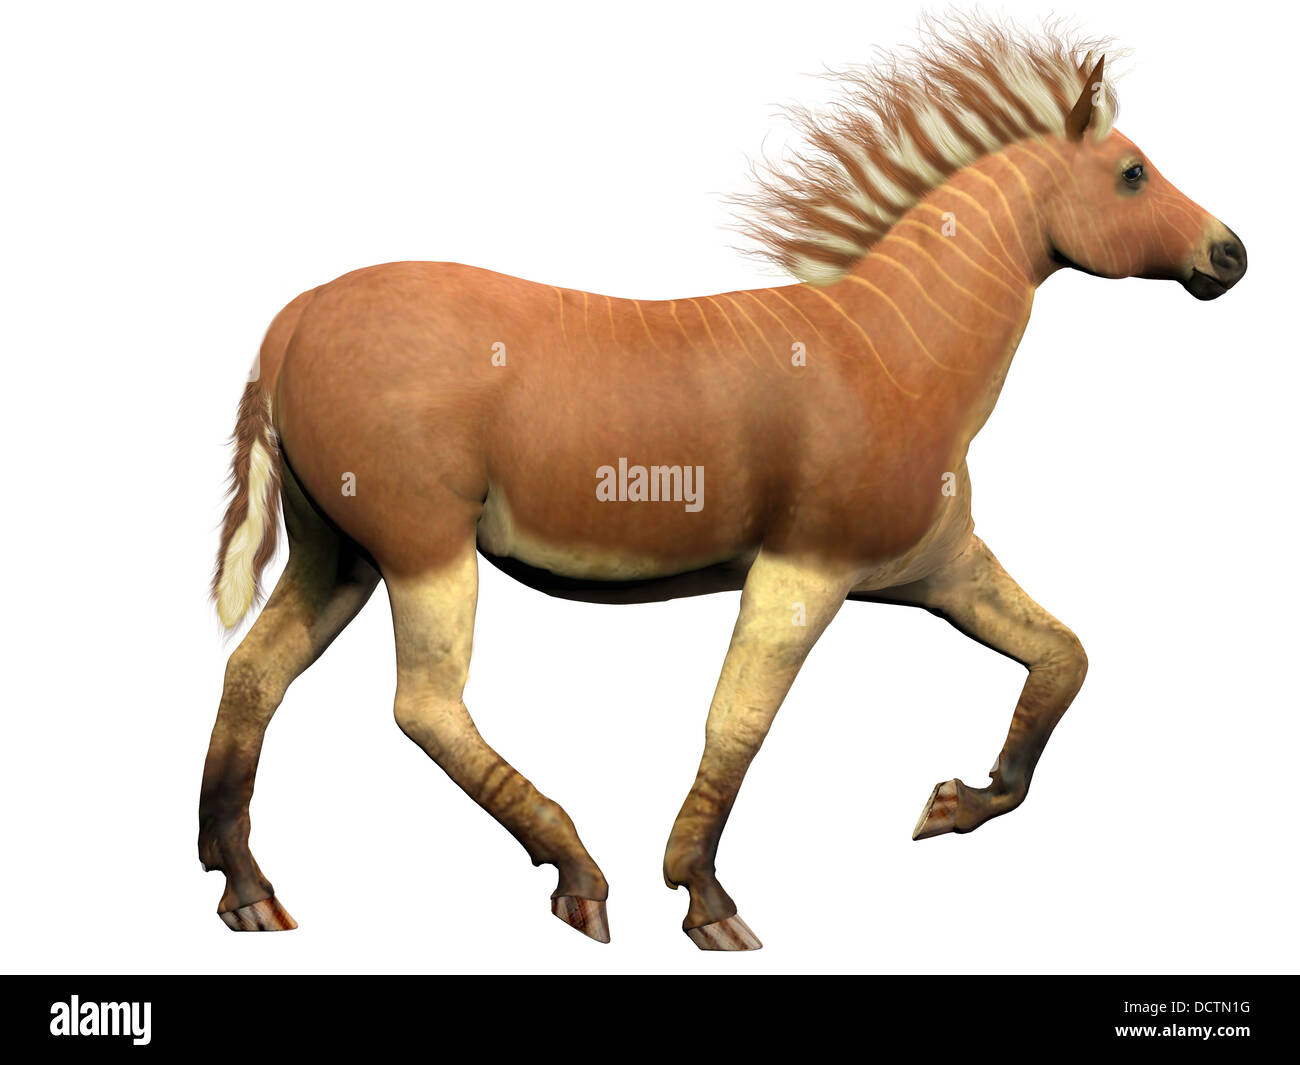 The Quagga species went extinct around 1870 and is more closely related to the zebra than the horse. - Stock Image